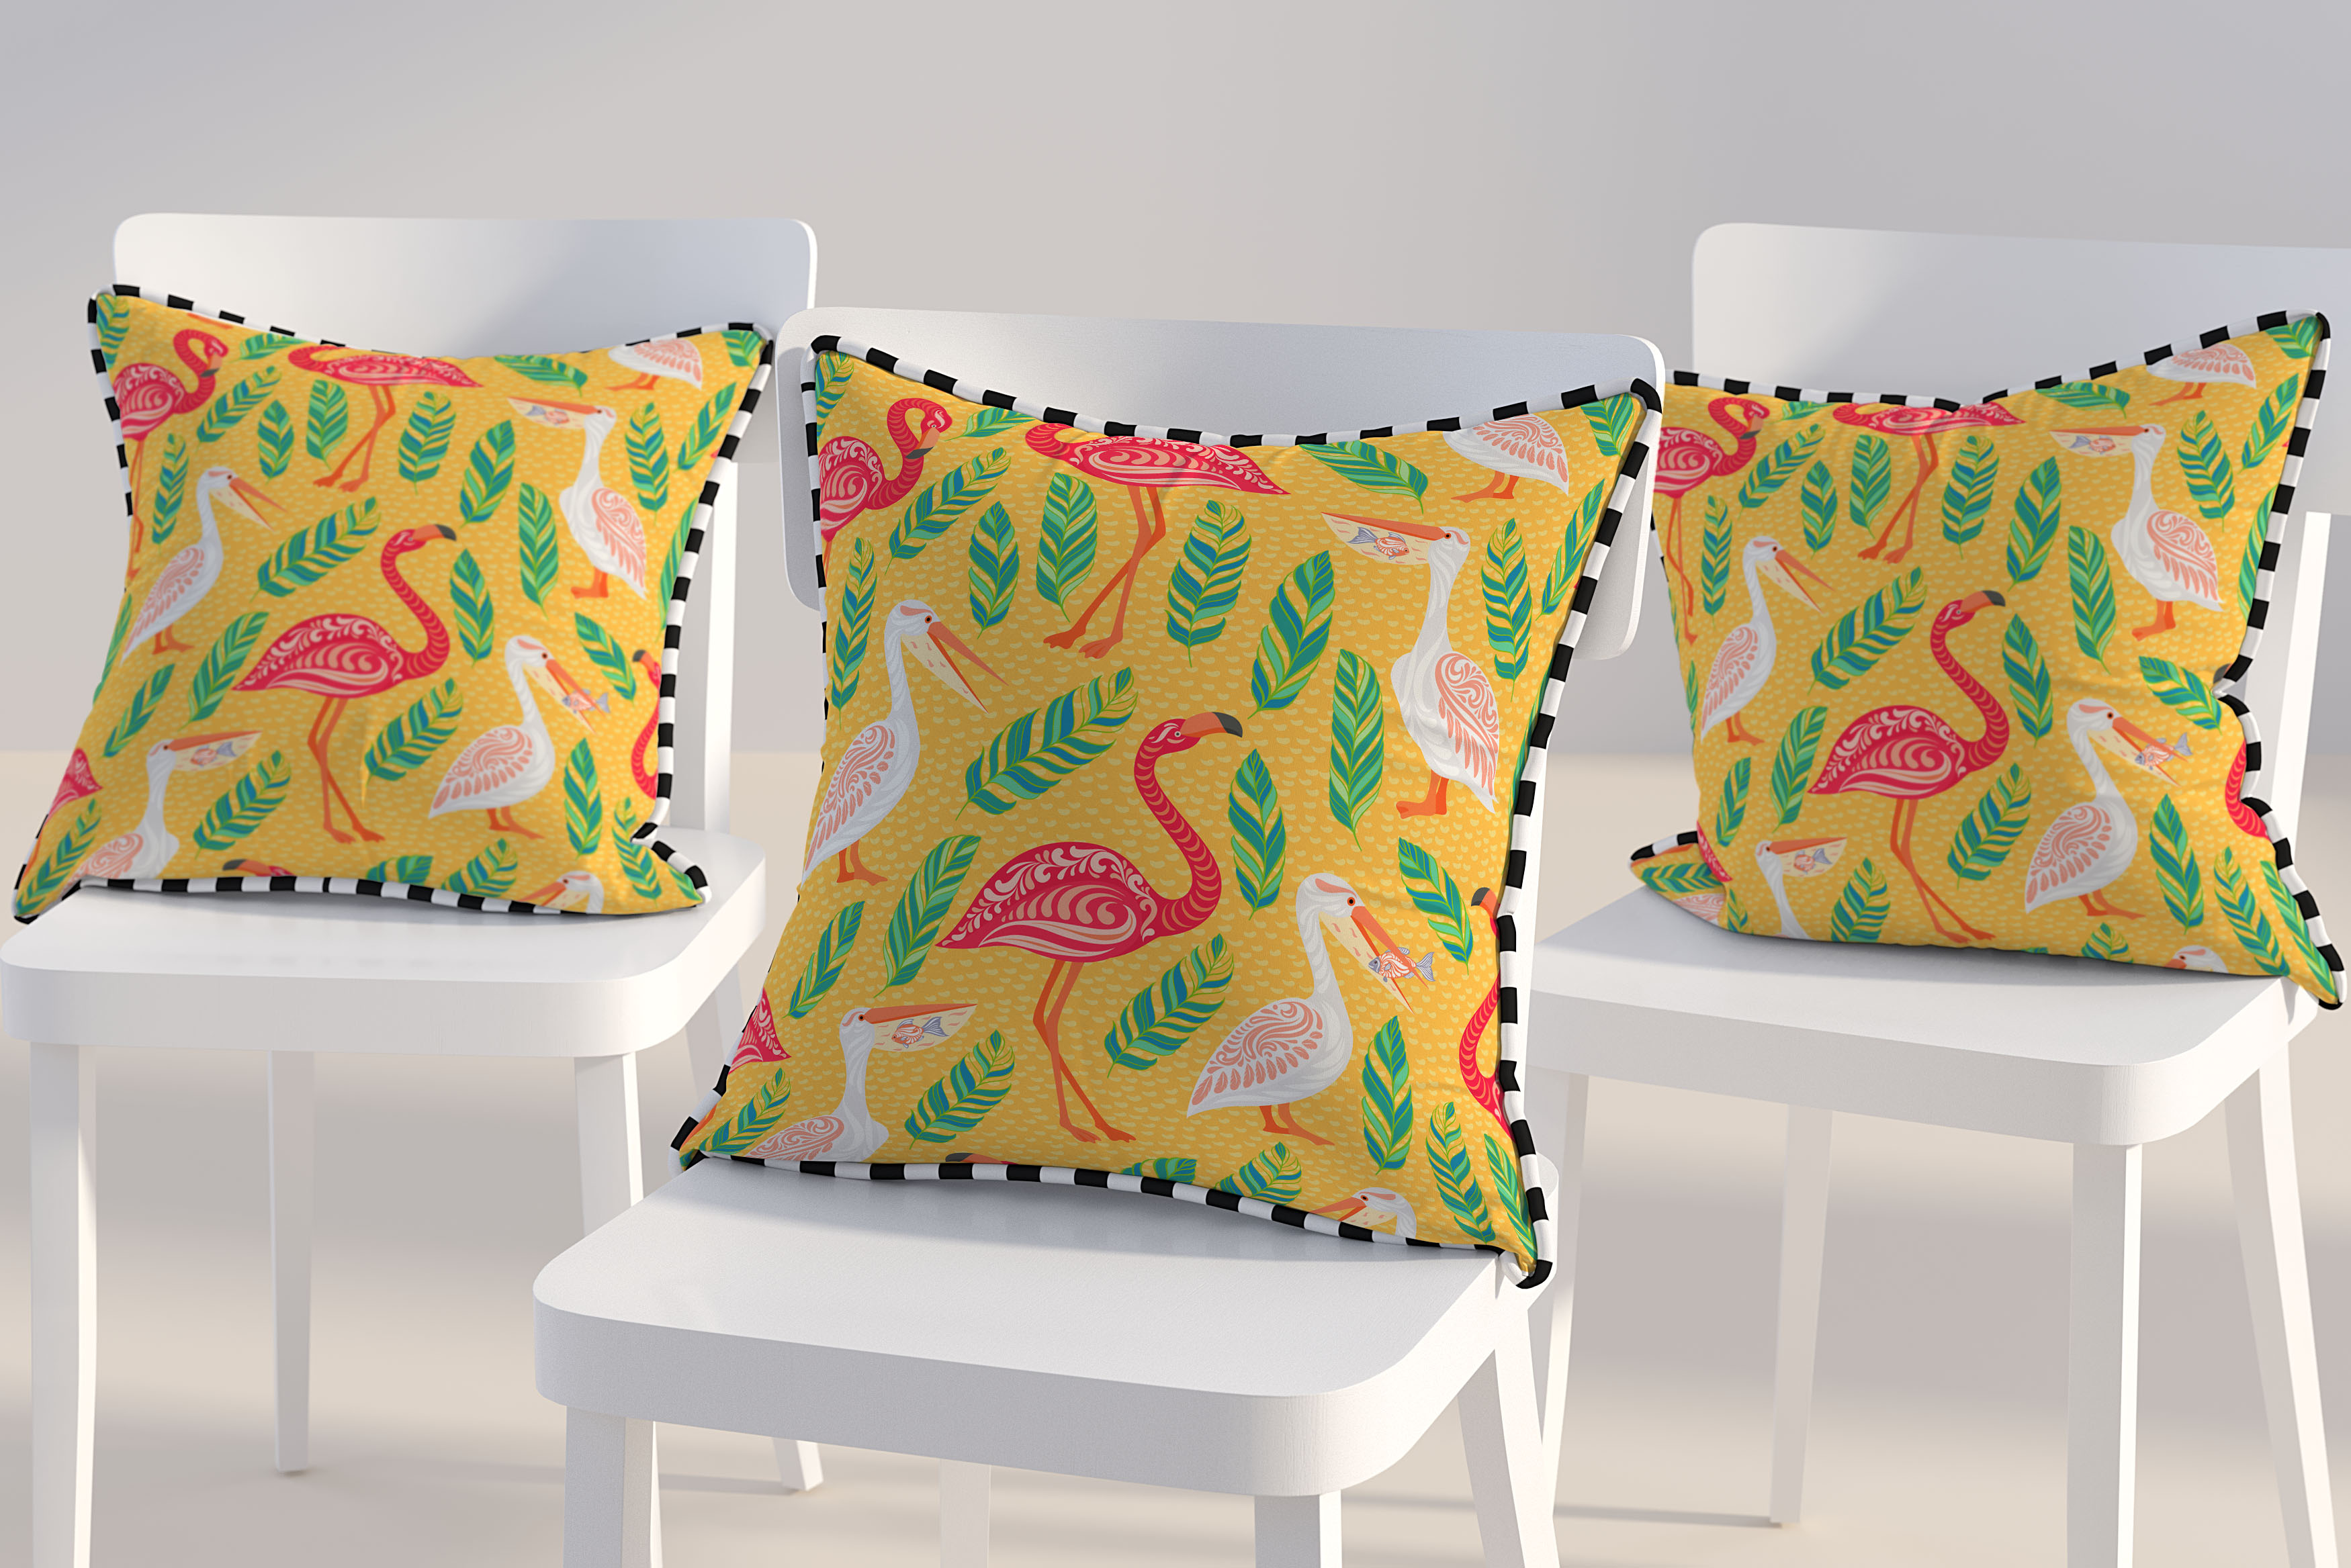 Free Pillow Cover Design Mockup